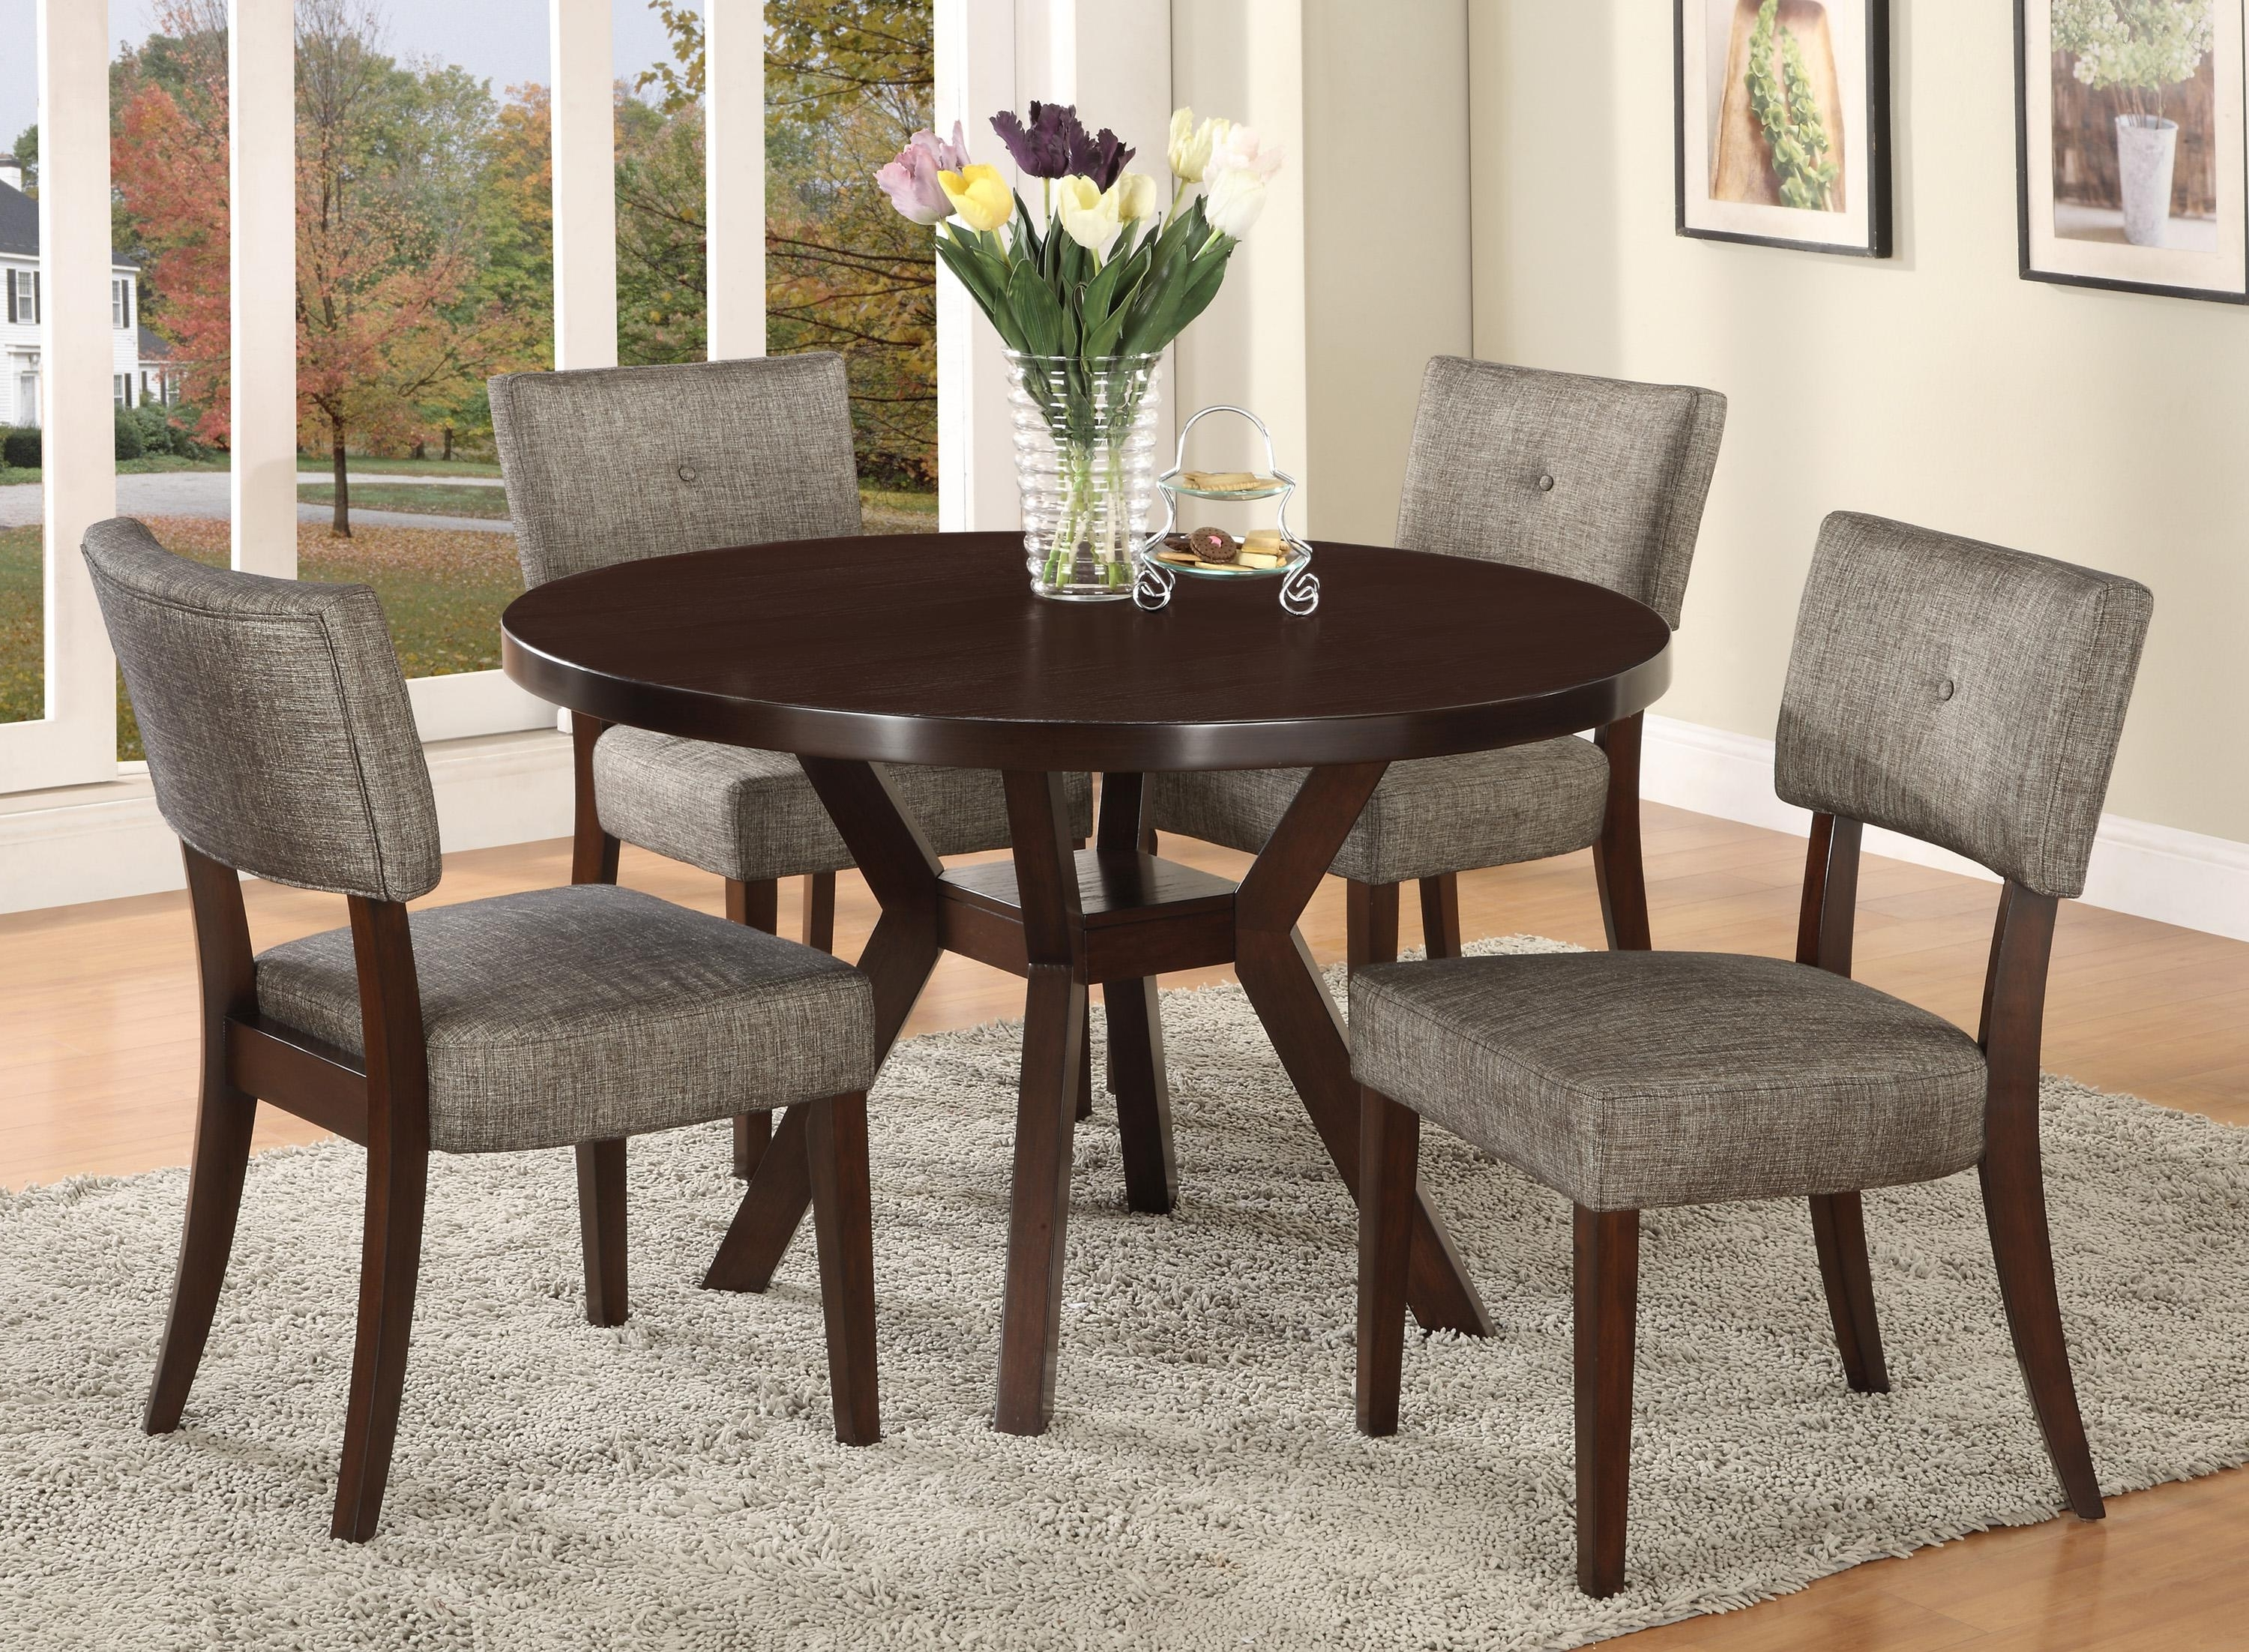 Newest Macie Round Dining Tables Throughout Crown Mark Kayla 5 Piece Dining Table And Chair Set (View 6 of 25)